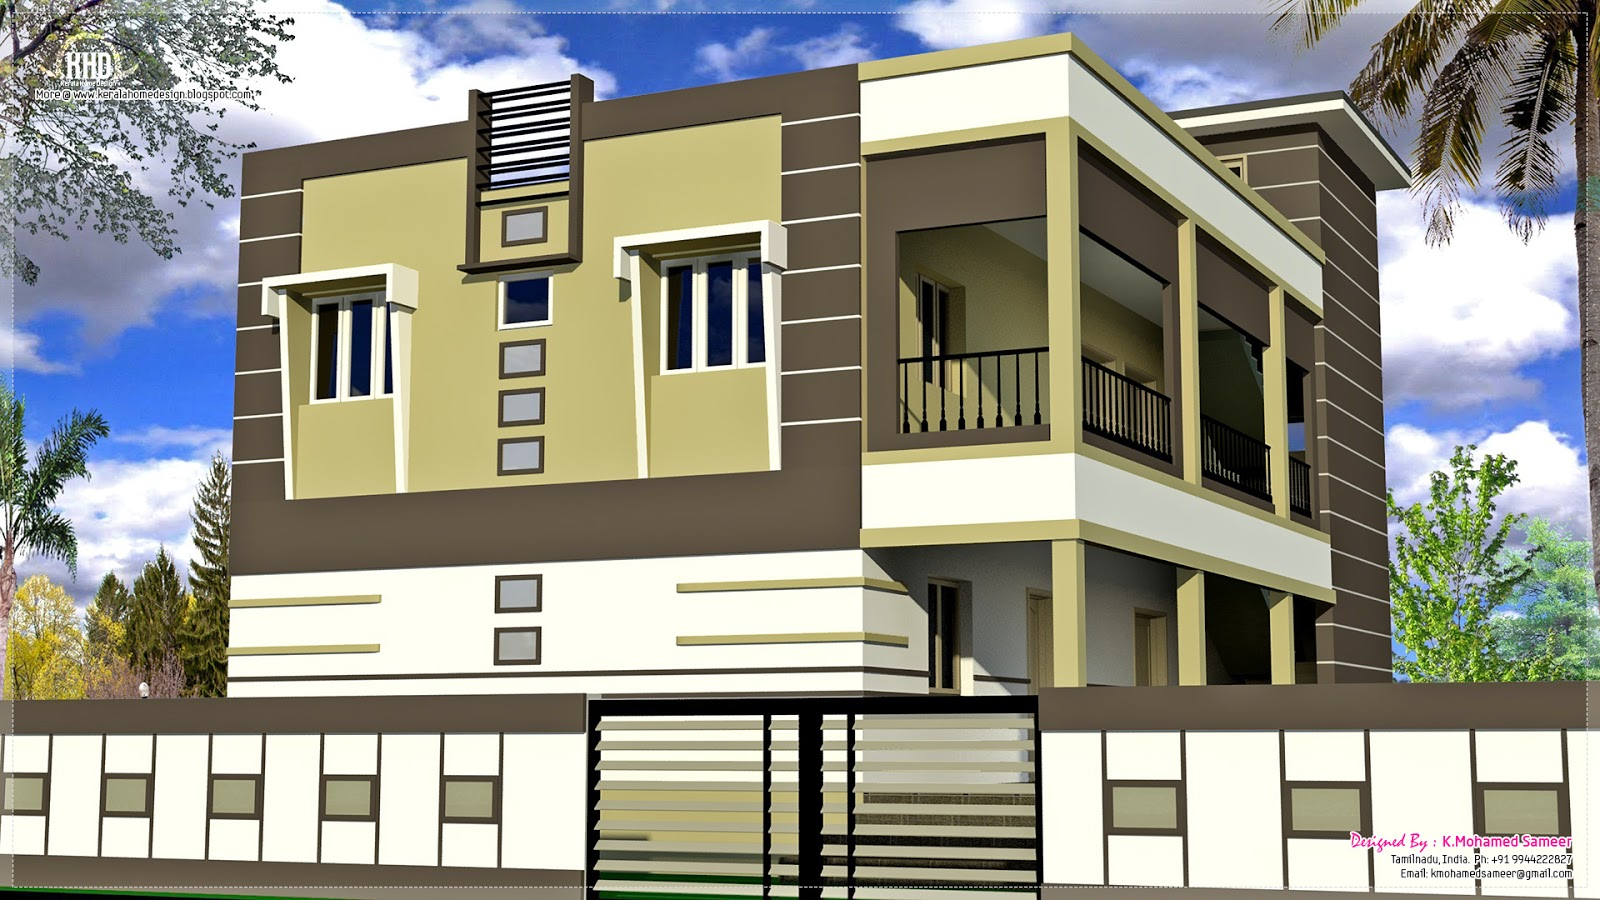 2 south indian house exterior designs kerala home design Indian house plans designs picture gallery